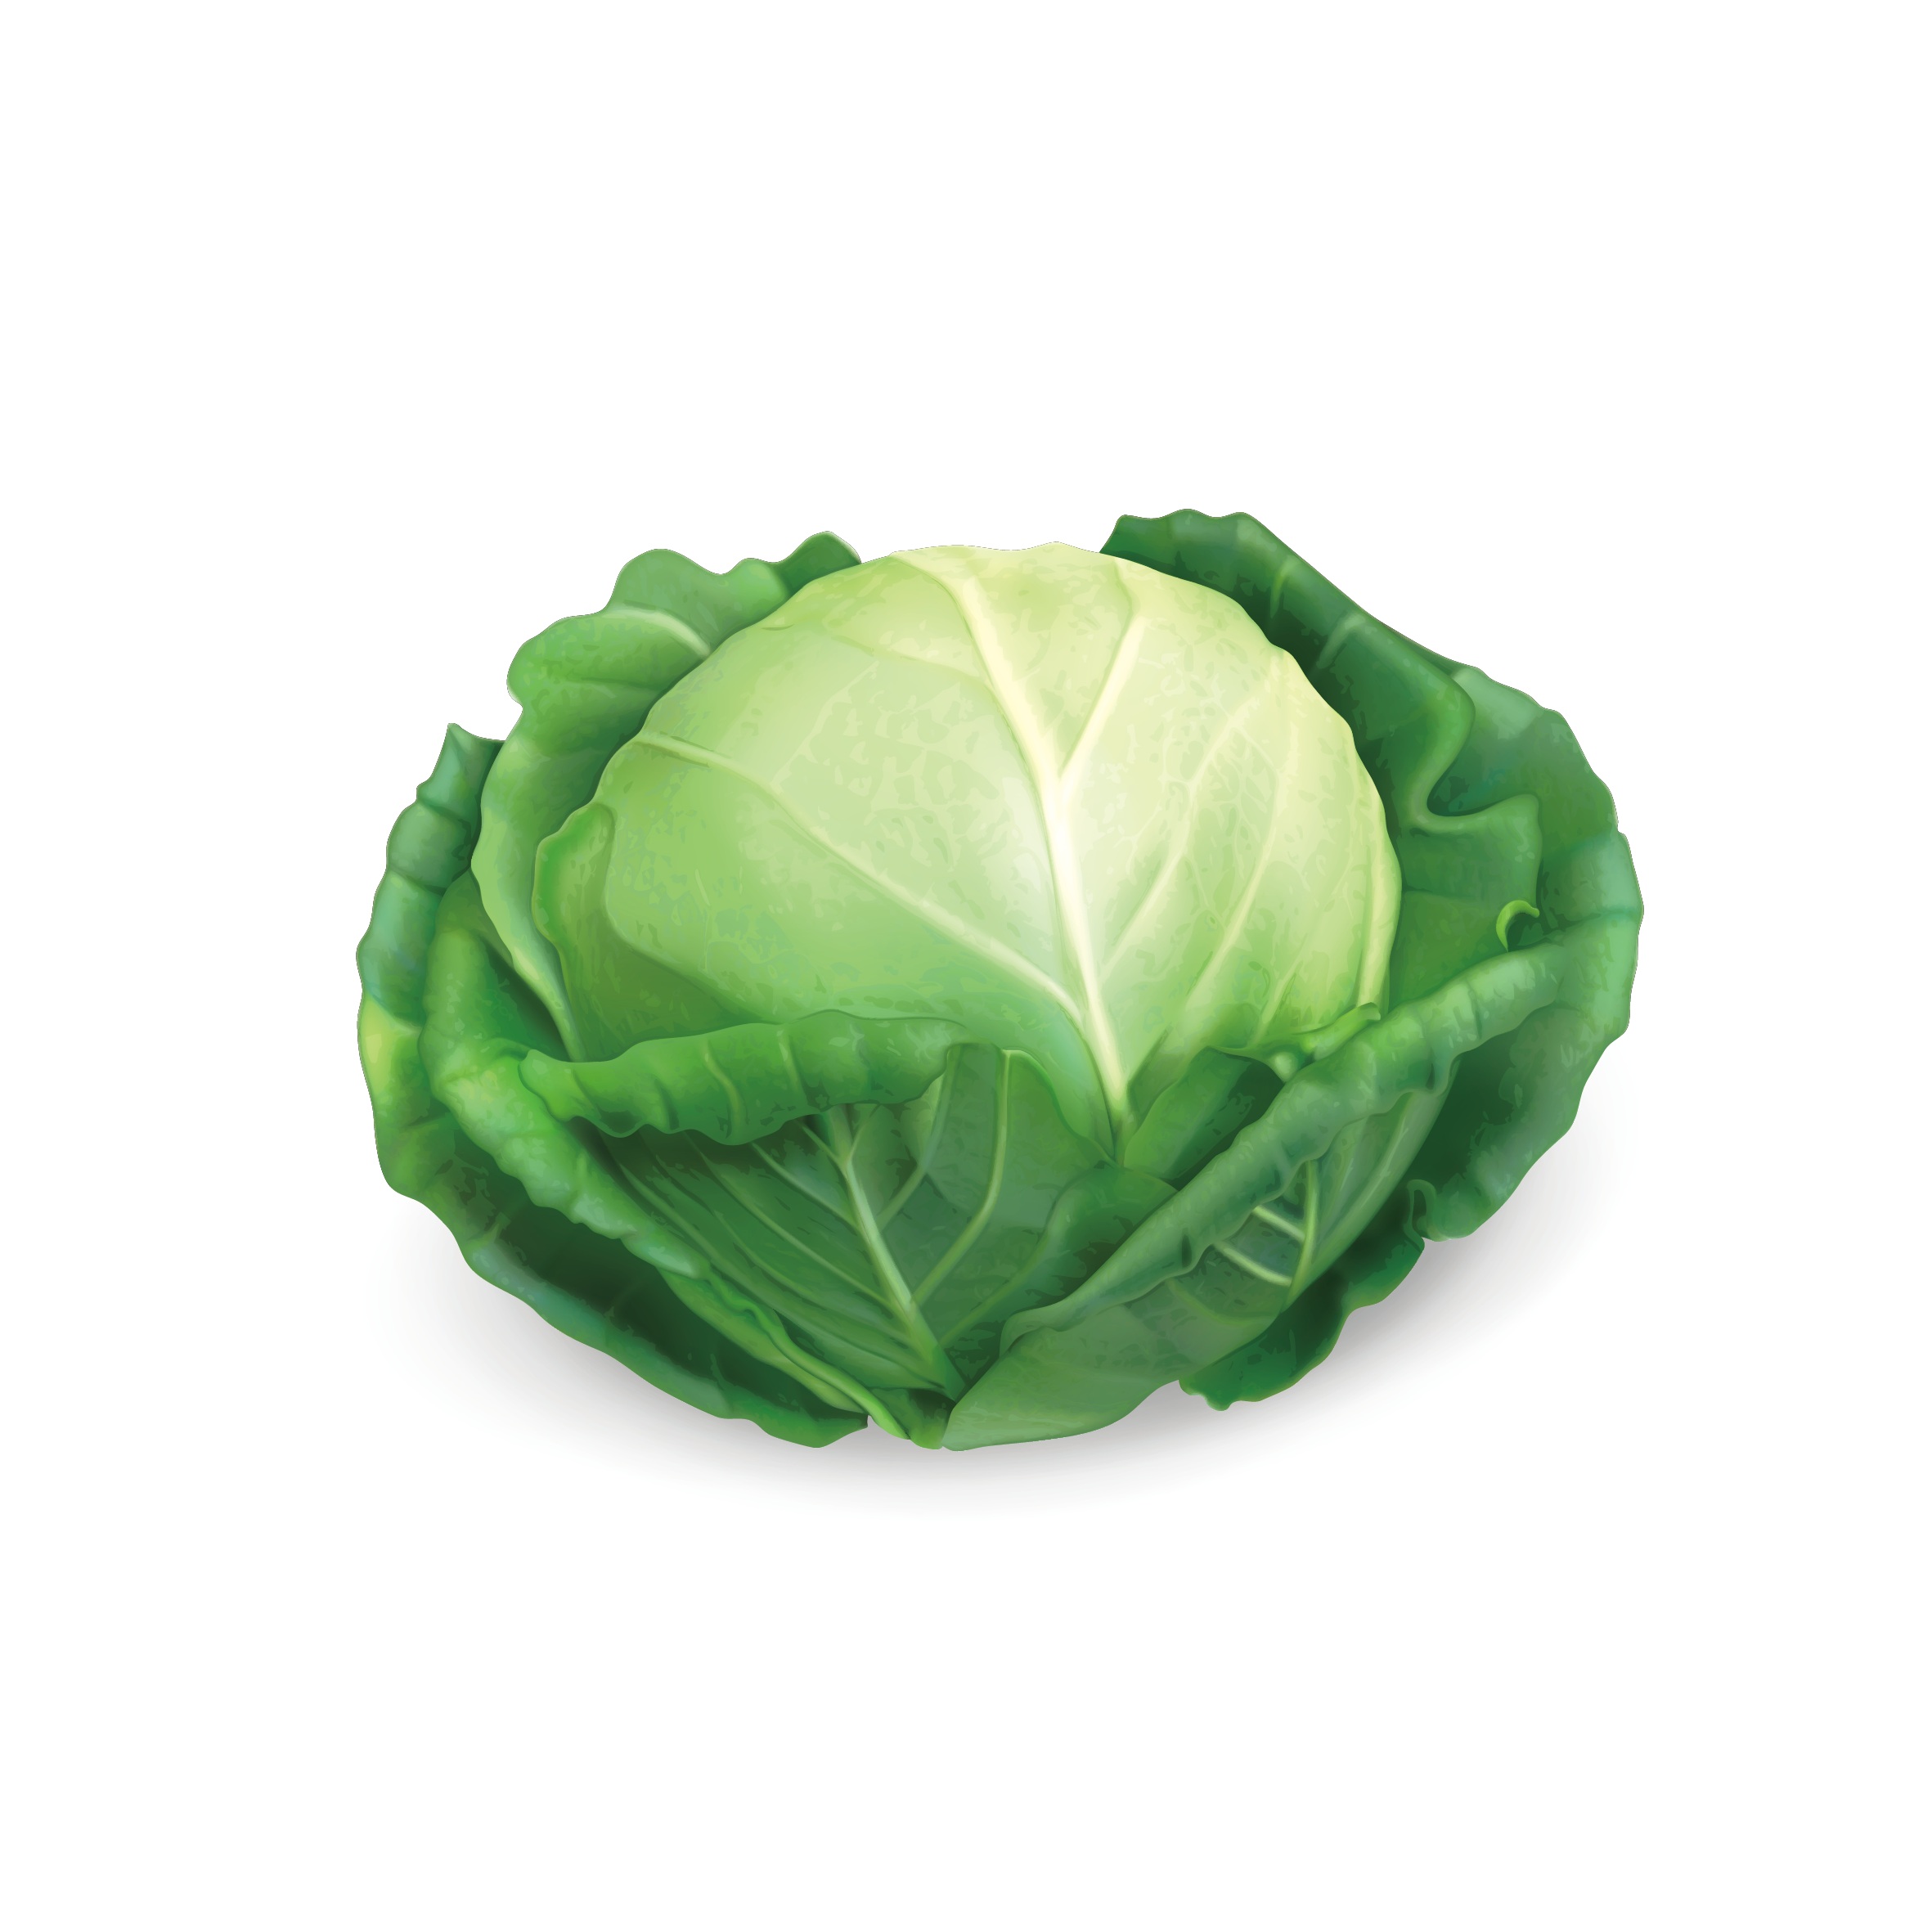 2362x2362 Red Cabbage Savoy Cabbage Chinese Cabbage